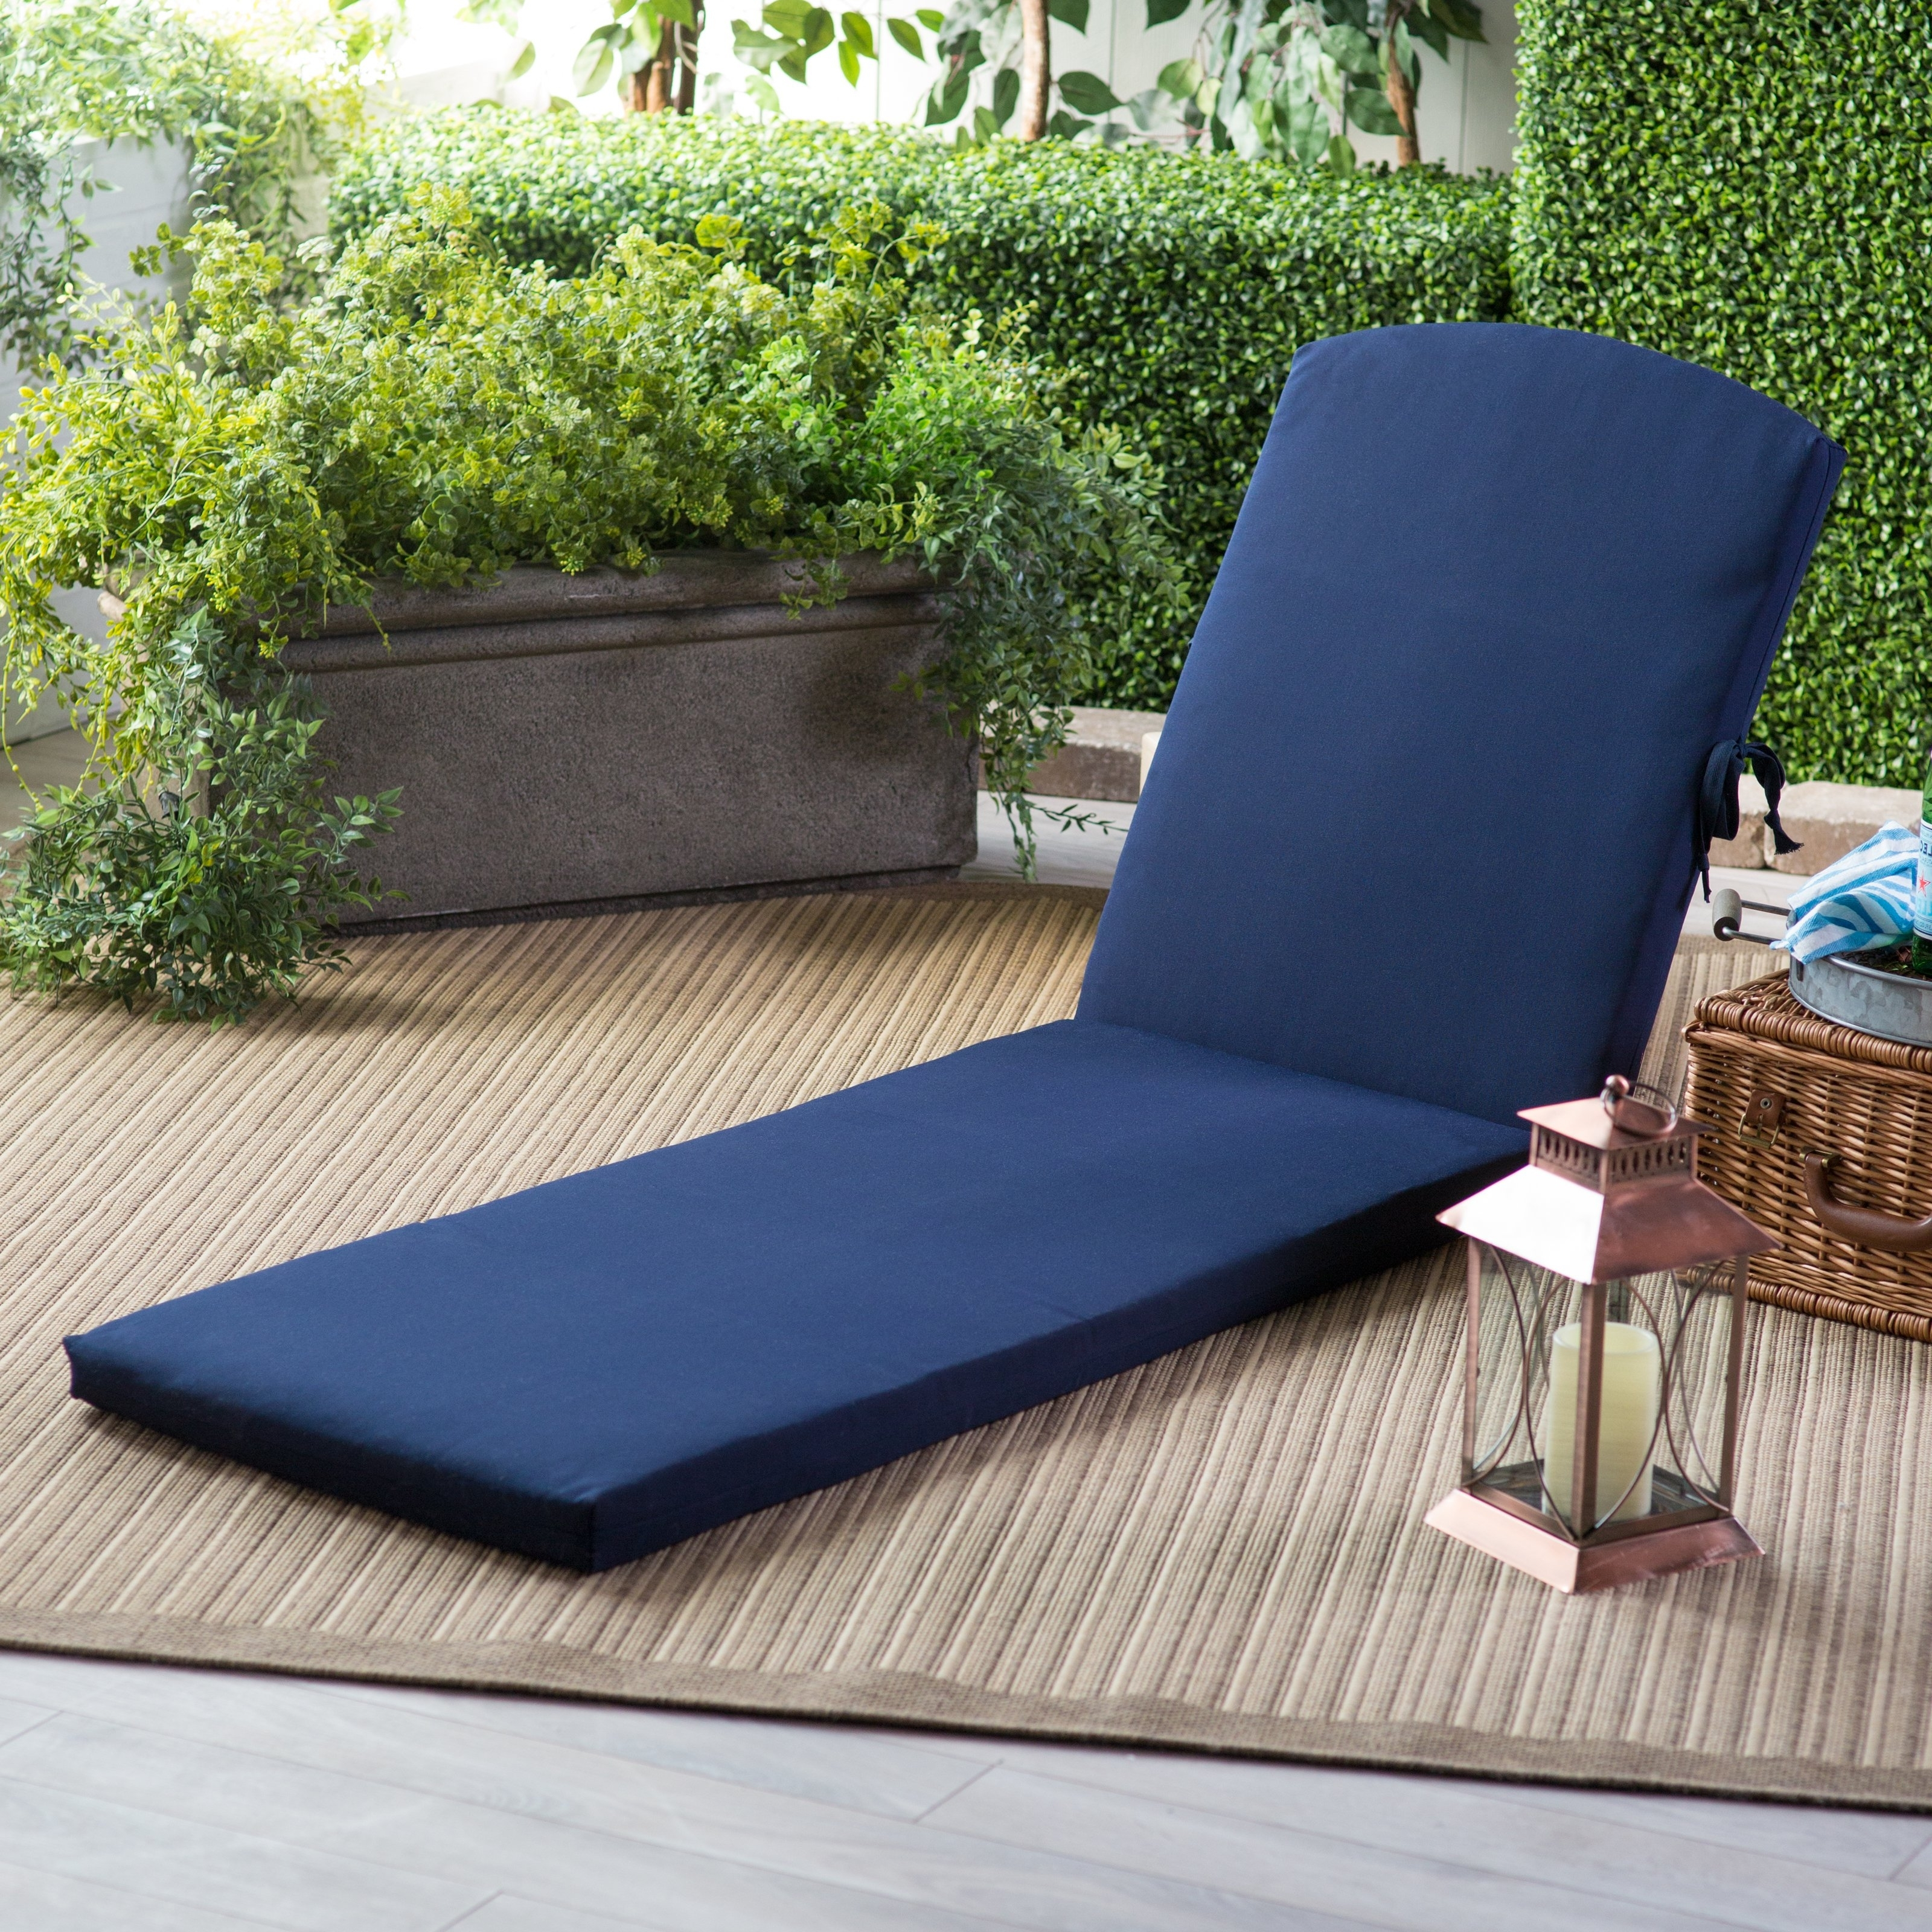 Outdoor : Tufted Chaise Bench Patio Furniture Chaise Lounge With 2017 Blue Outdoor Chaise Lounge Chairs (View 12 of 15)